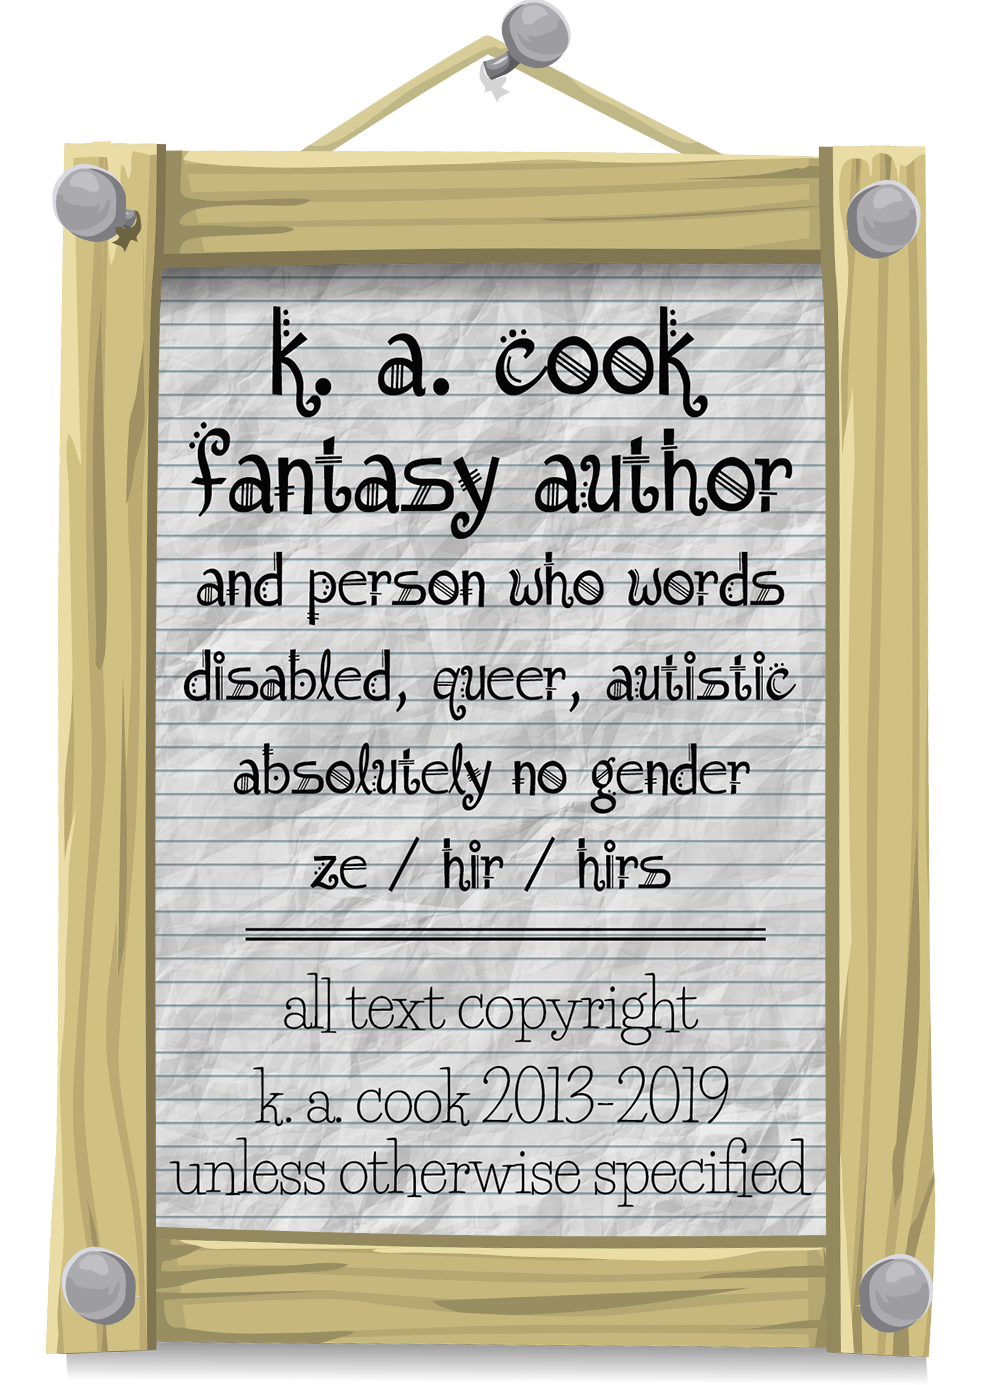 Picture of a piece of crumpled notebook paper reading: k. a. cook; fantasy author and person who words; disabled, queer, autistic; absolutely no gender; ze hir hirs; all text copyright k. a. cook 2013-2019 unless otherwise specified